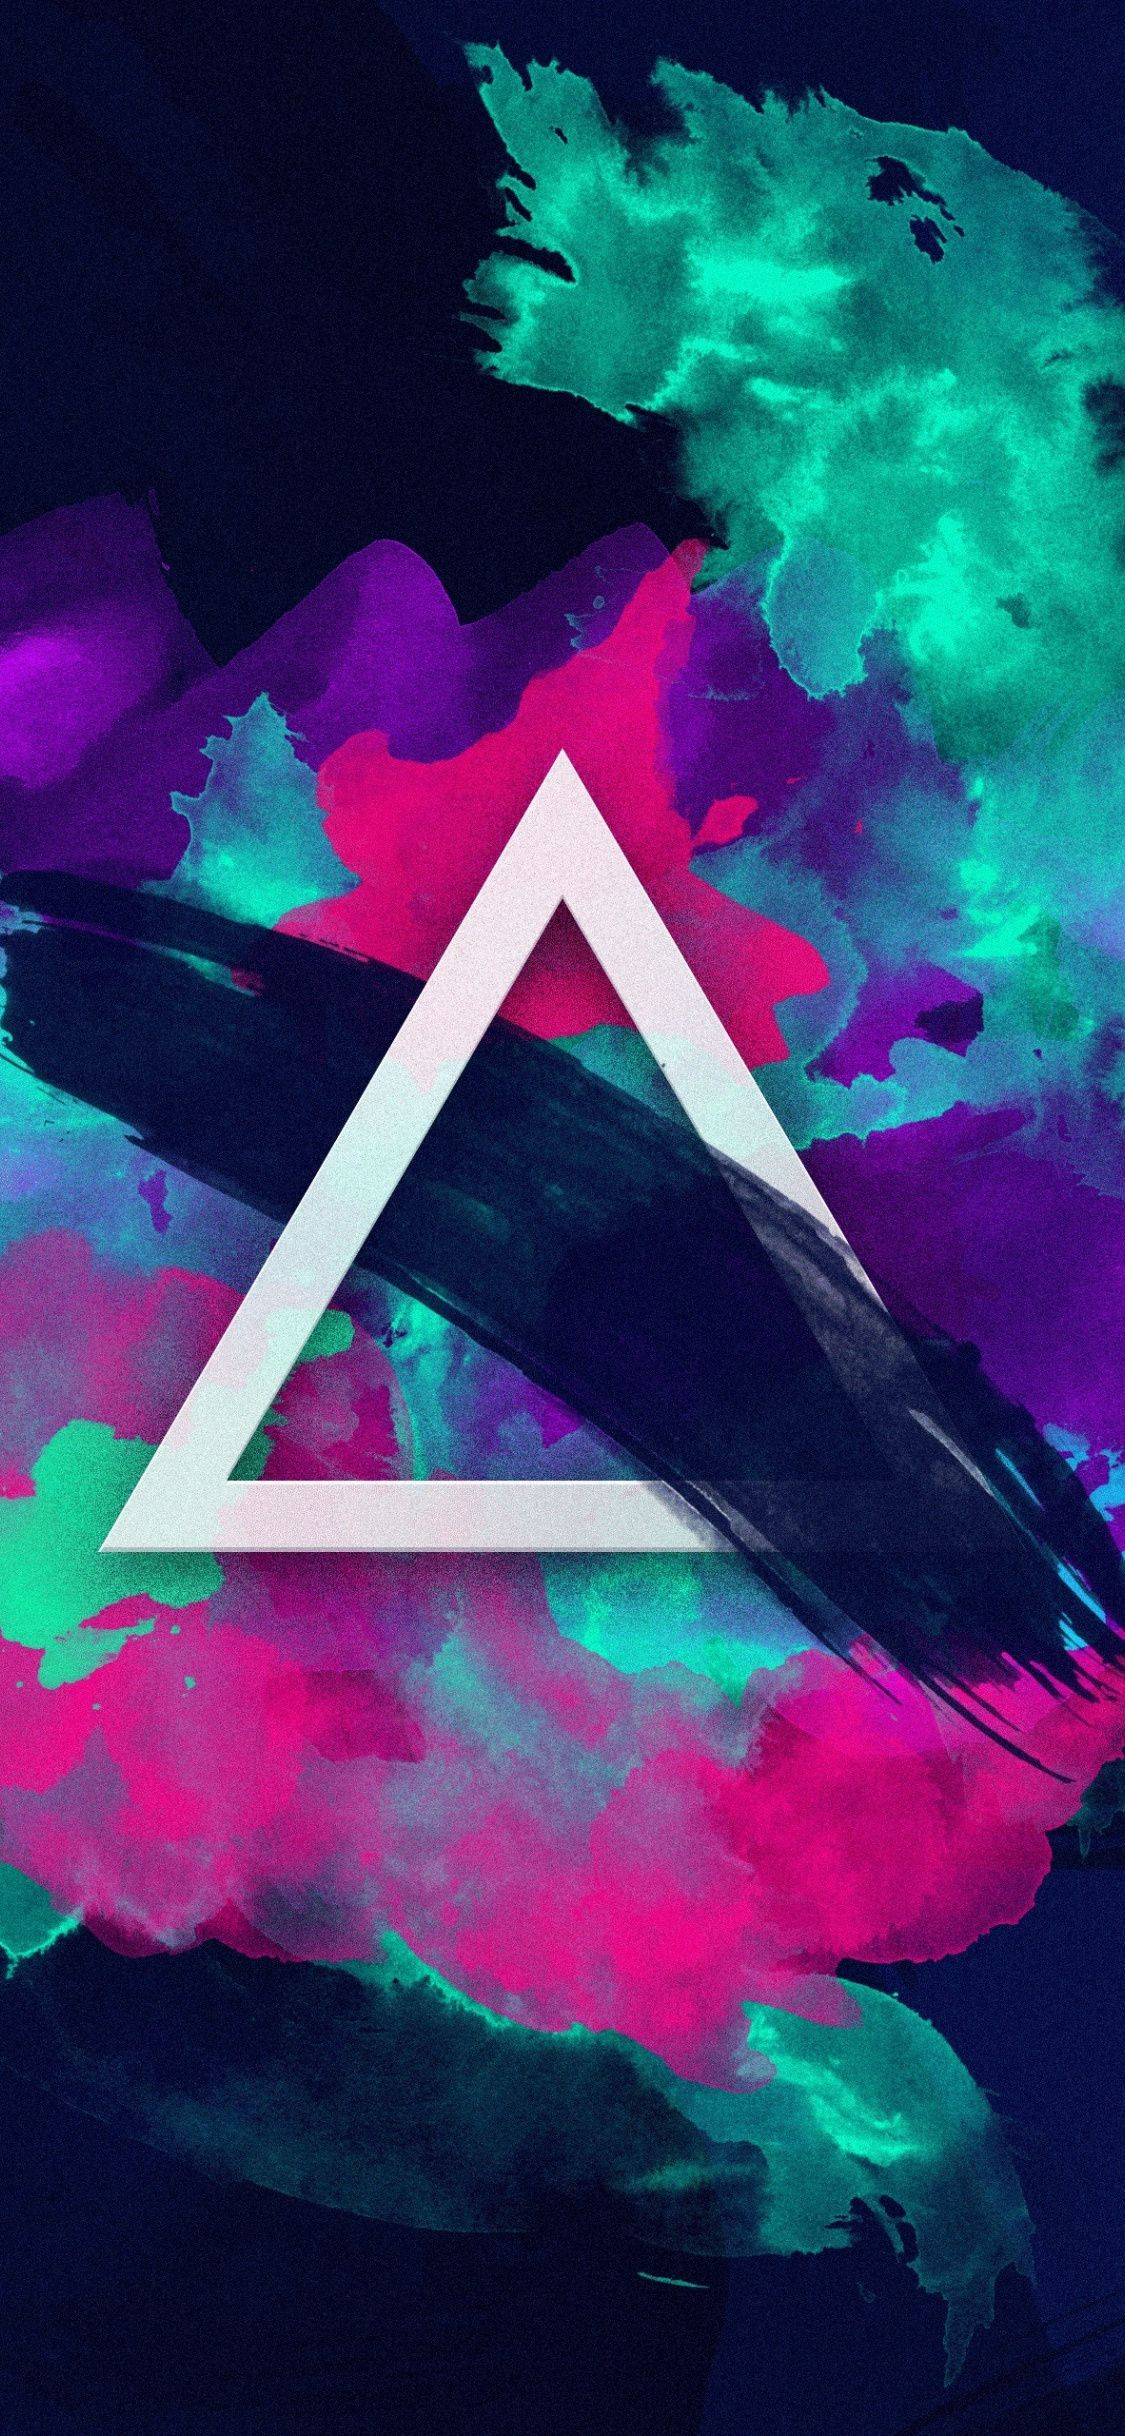 1125x2436 Download 1125x2436 wallpaper triangle, color splashes ...